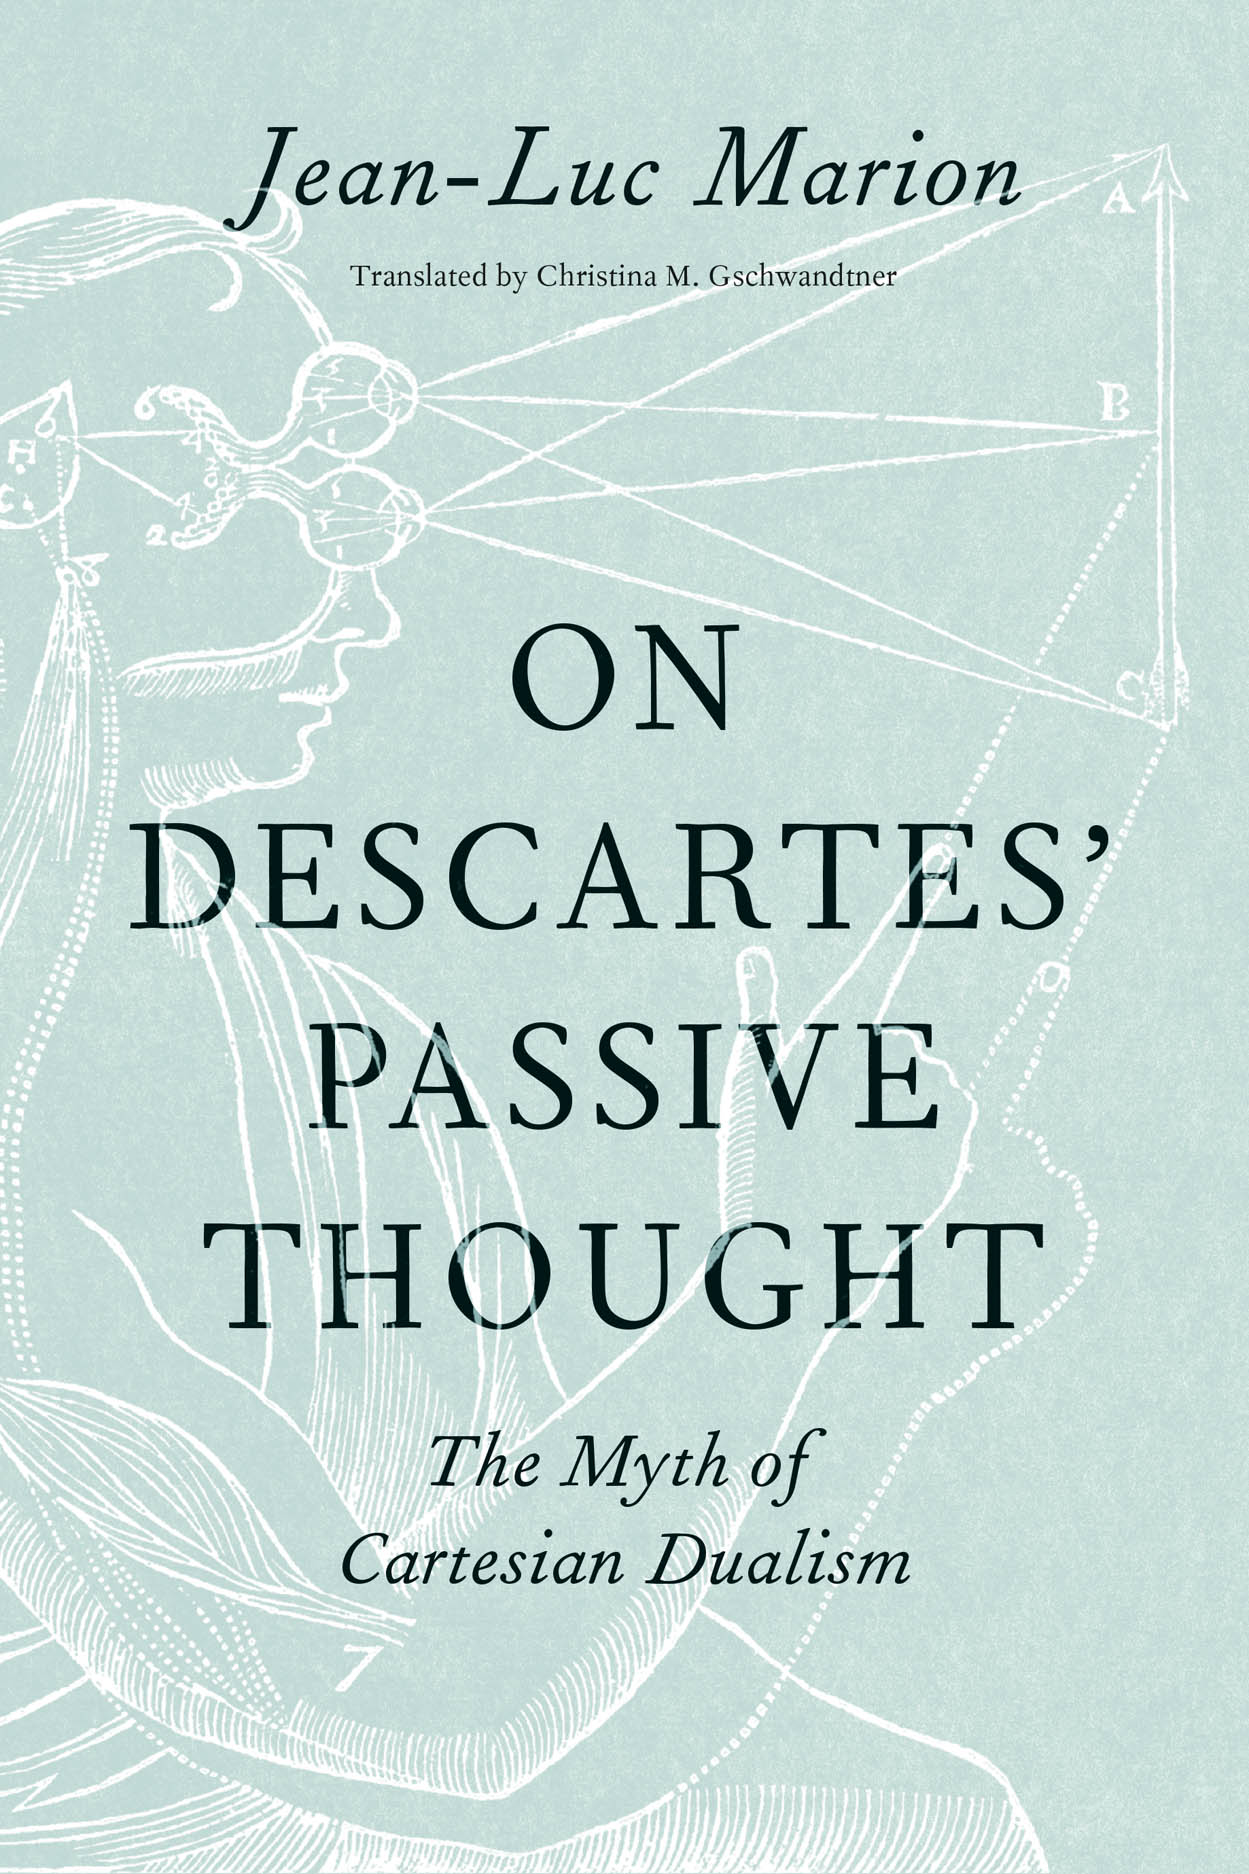 On Descartes' Passive Thought: The Myth of Cartesian Dualism Book Cover